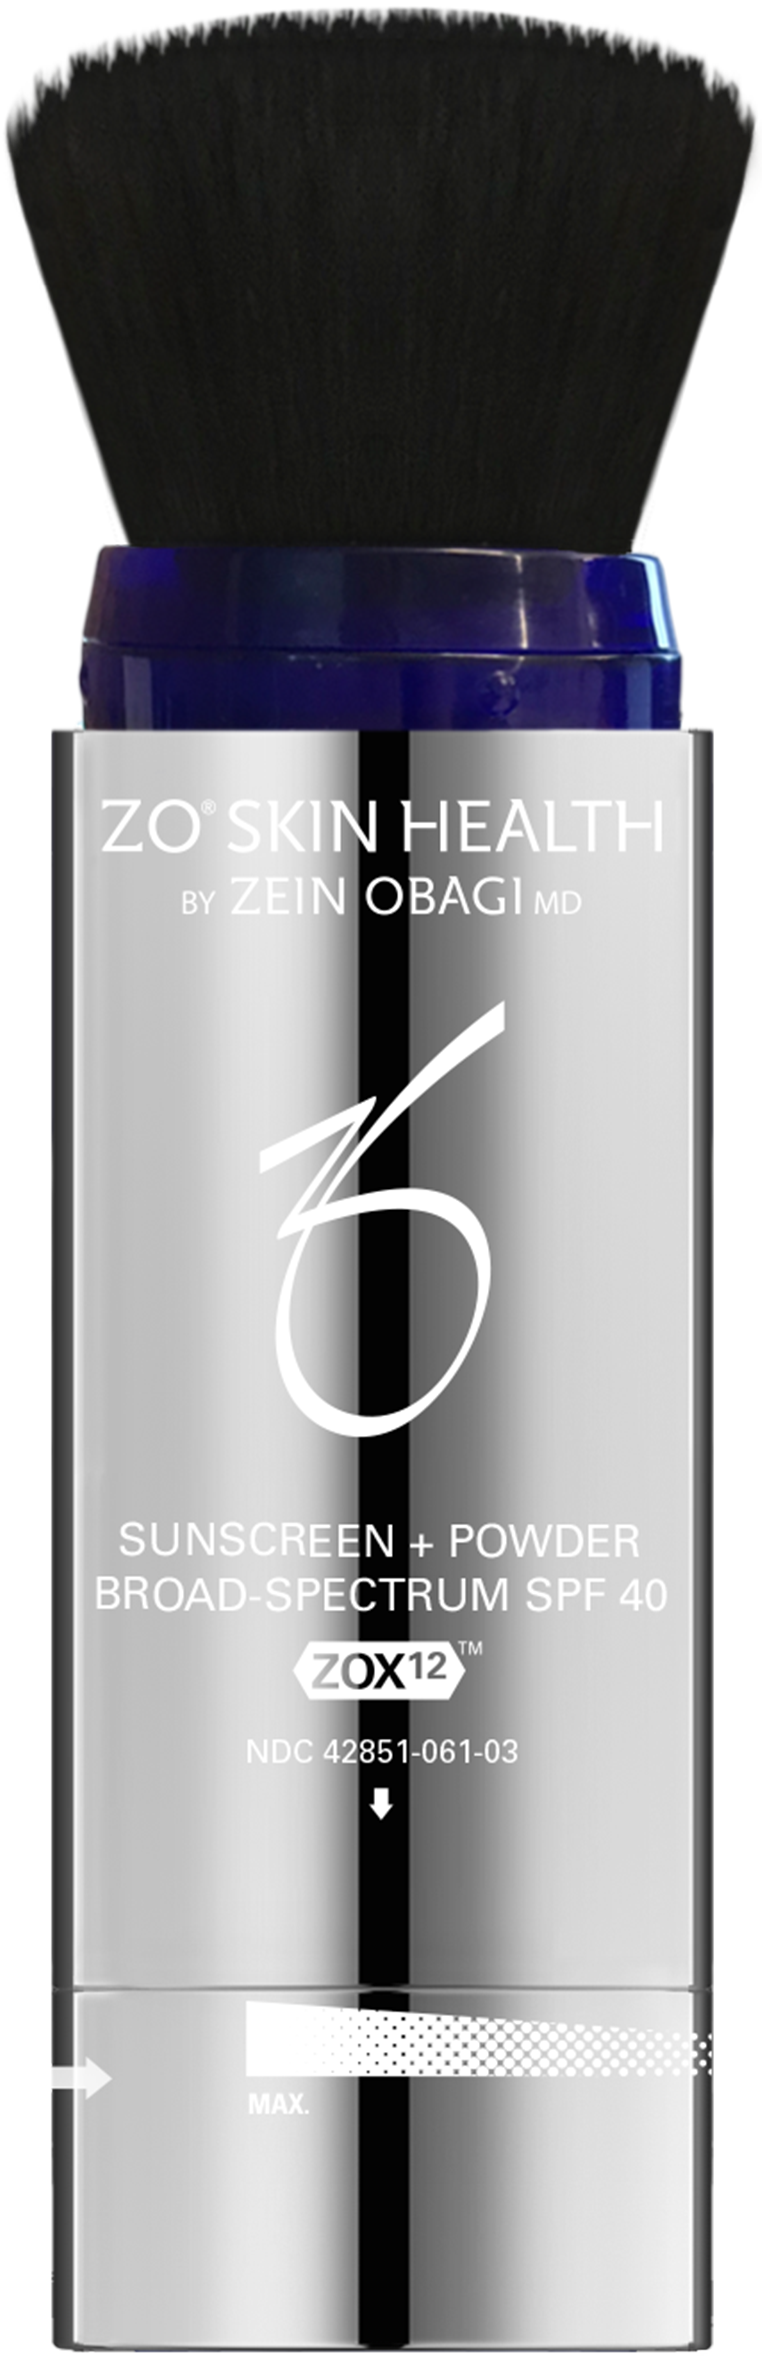 Sunscreen + Powder Broad Spectrum SPF 40